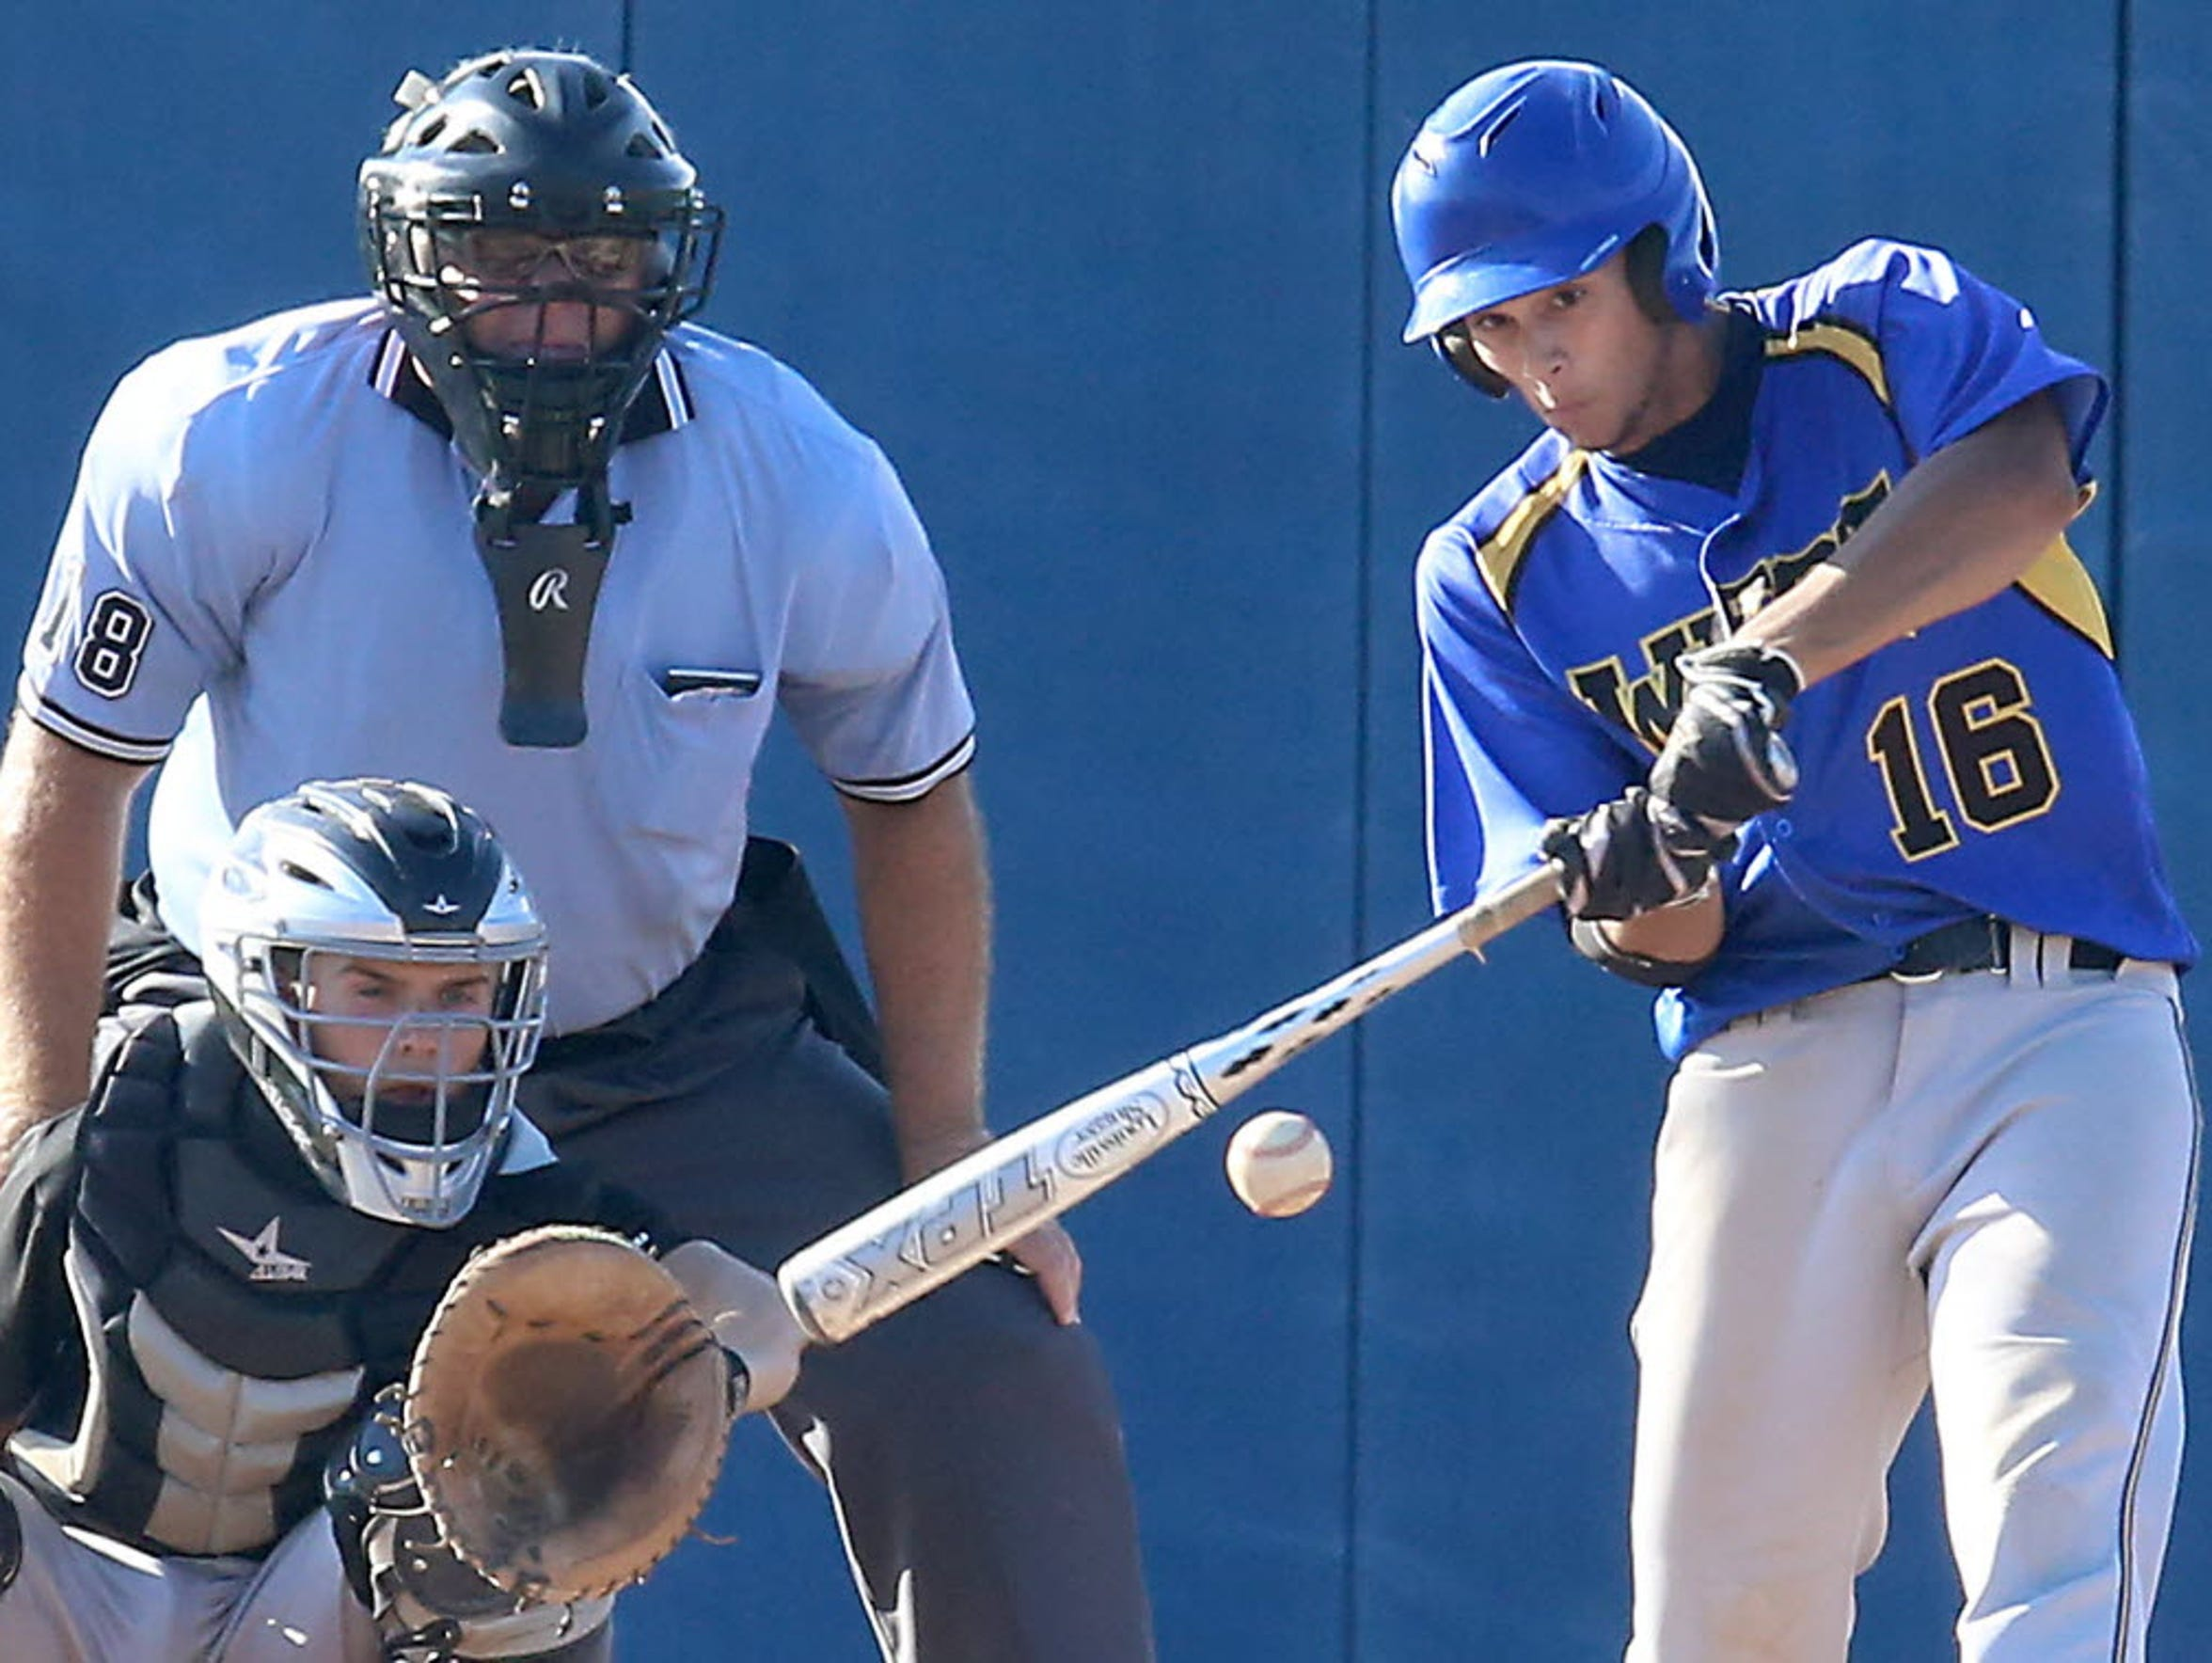 New Berlin West's Allan Peil delivered clutch hit after